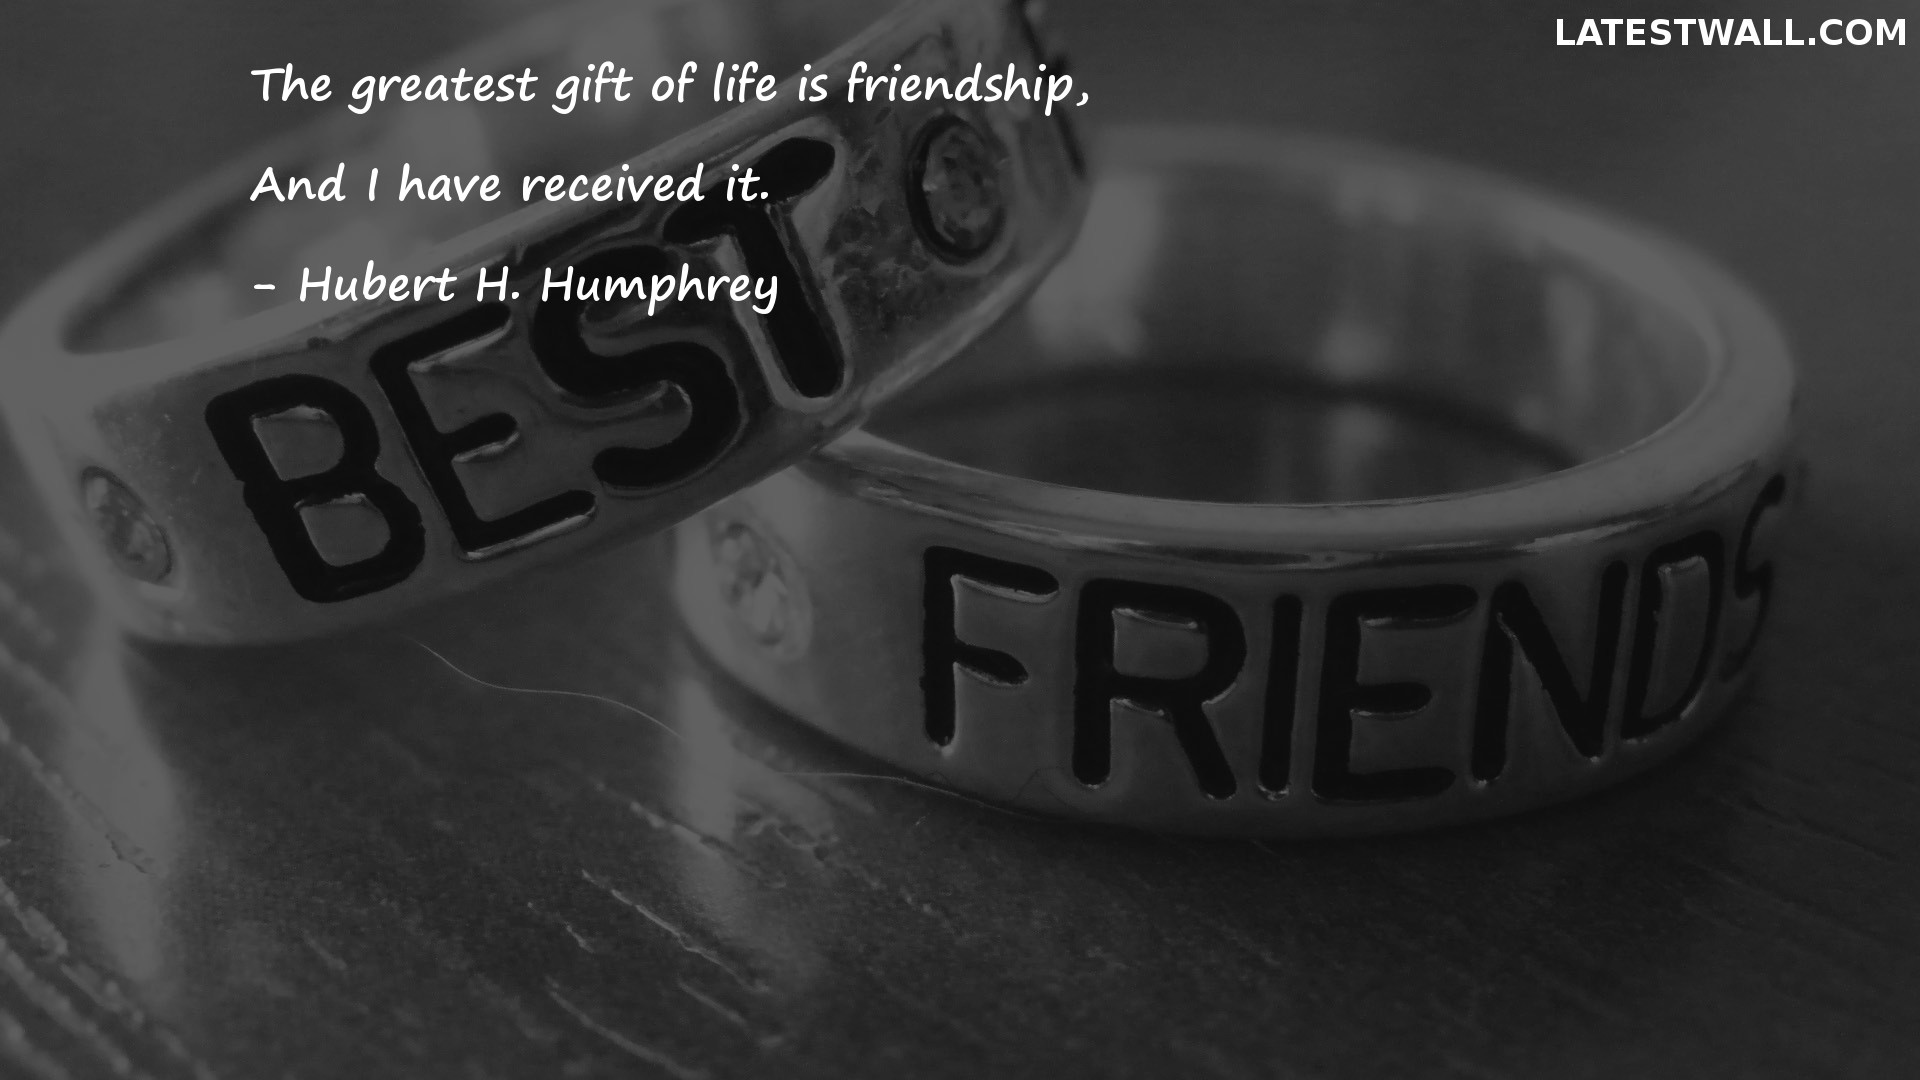 The greatest gift of life is friendship